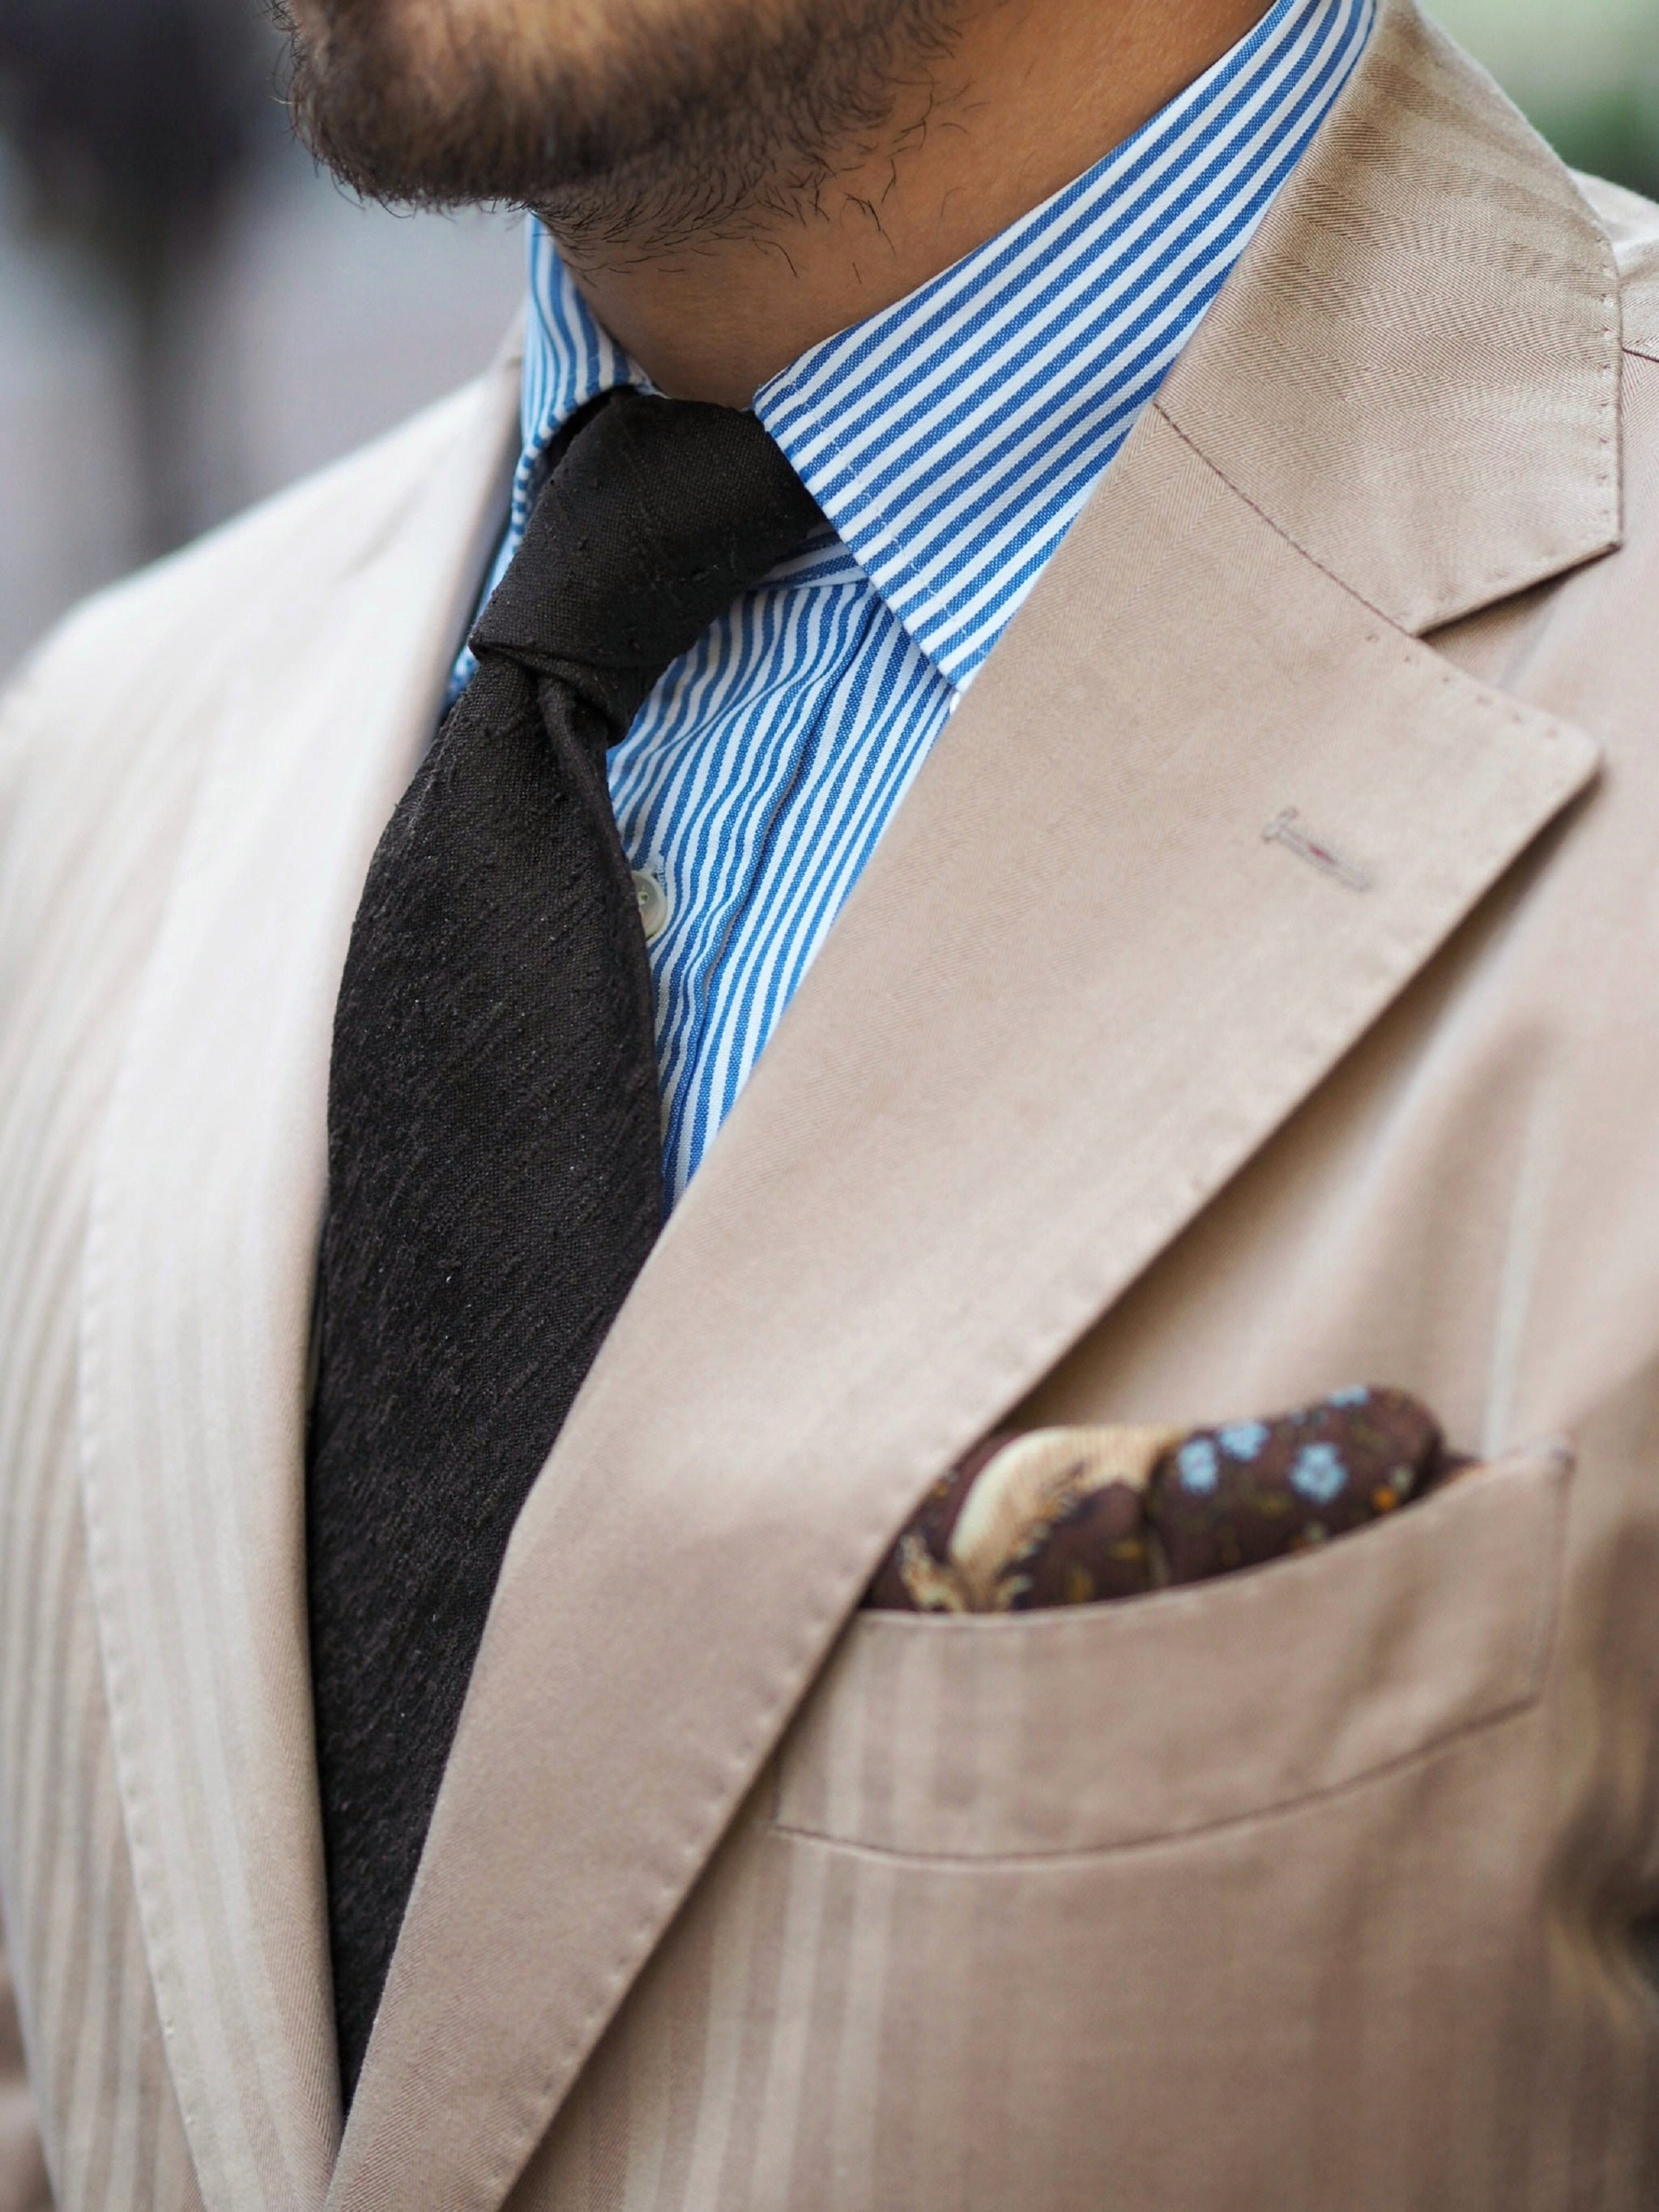 Shantung tie with the solaro suit - details.